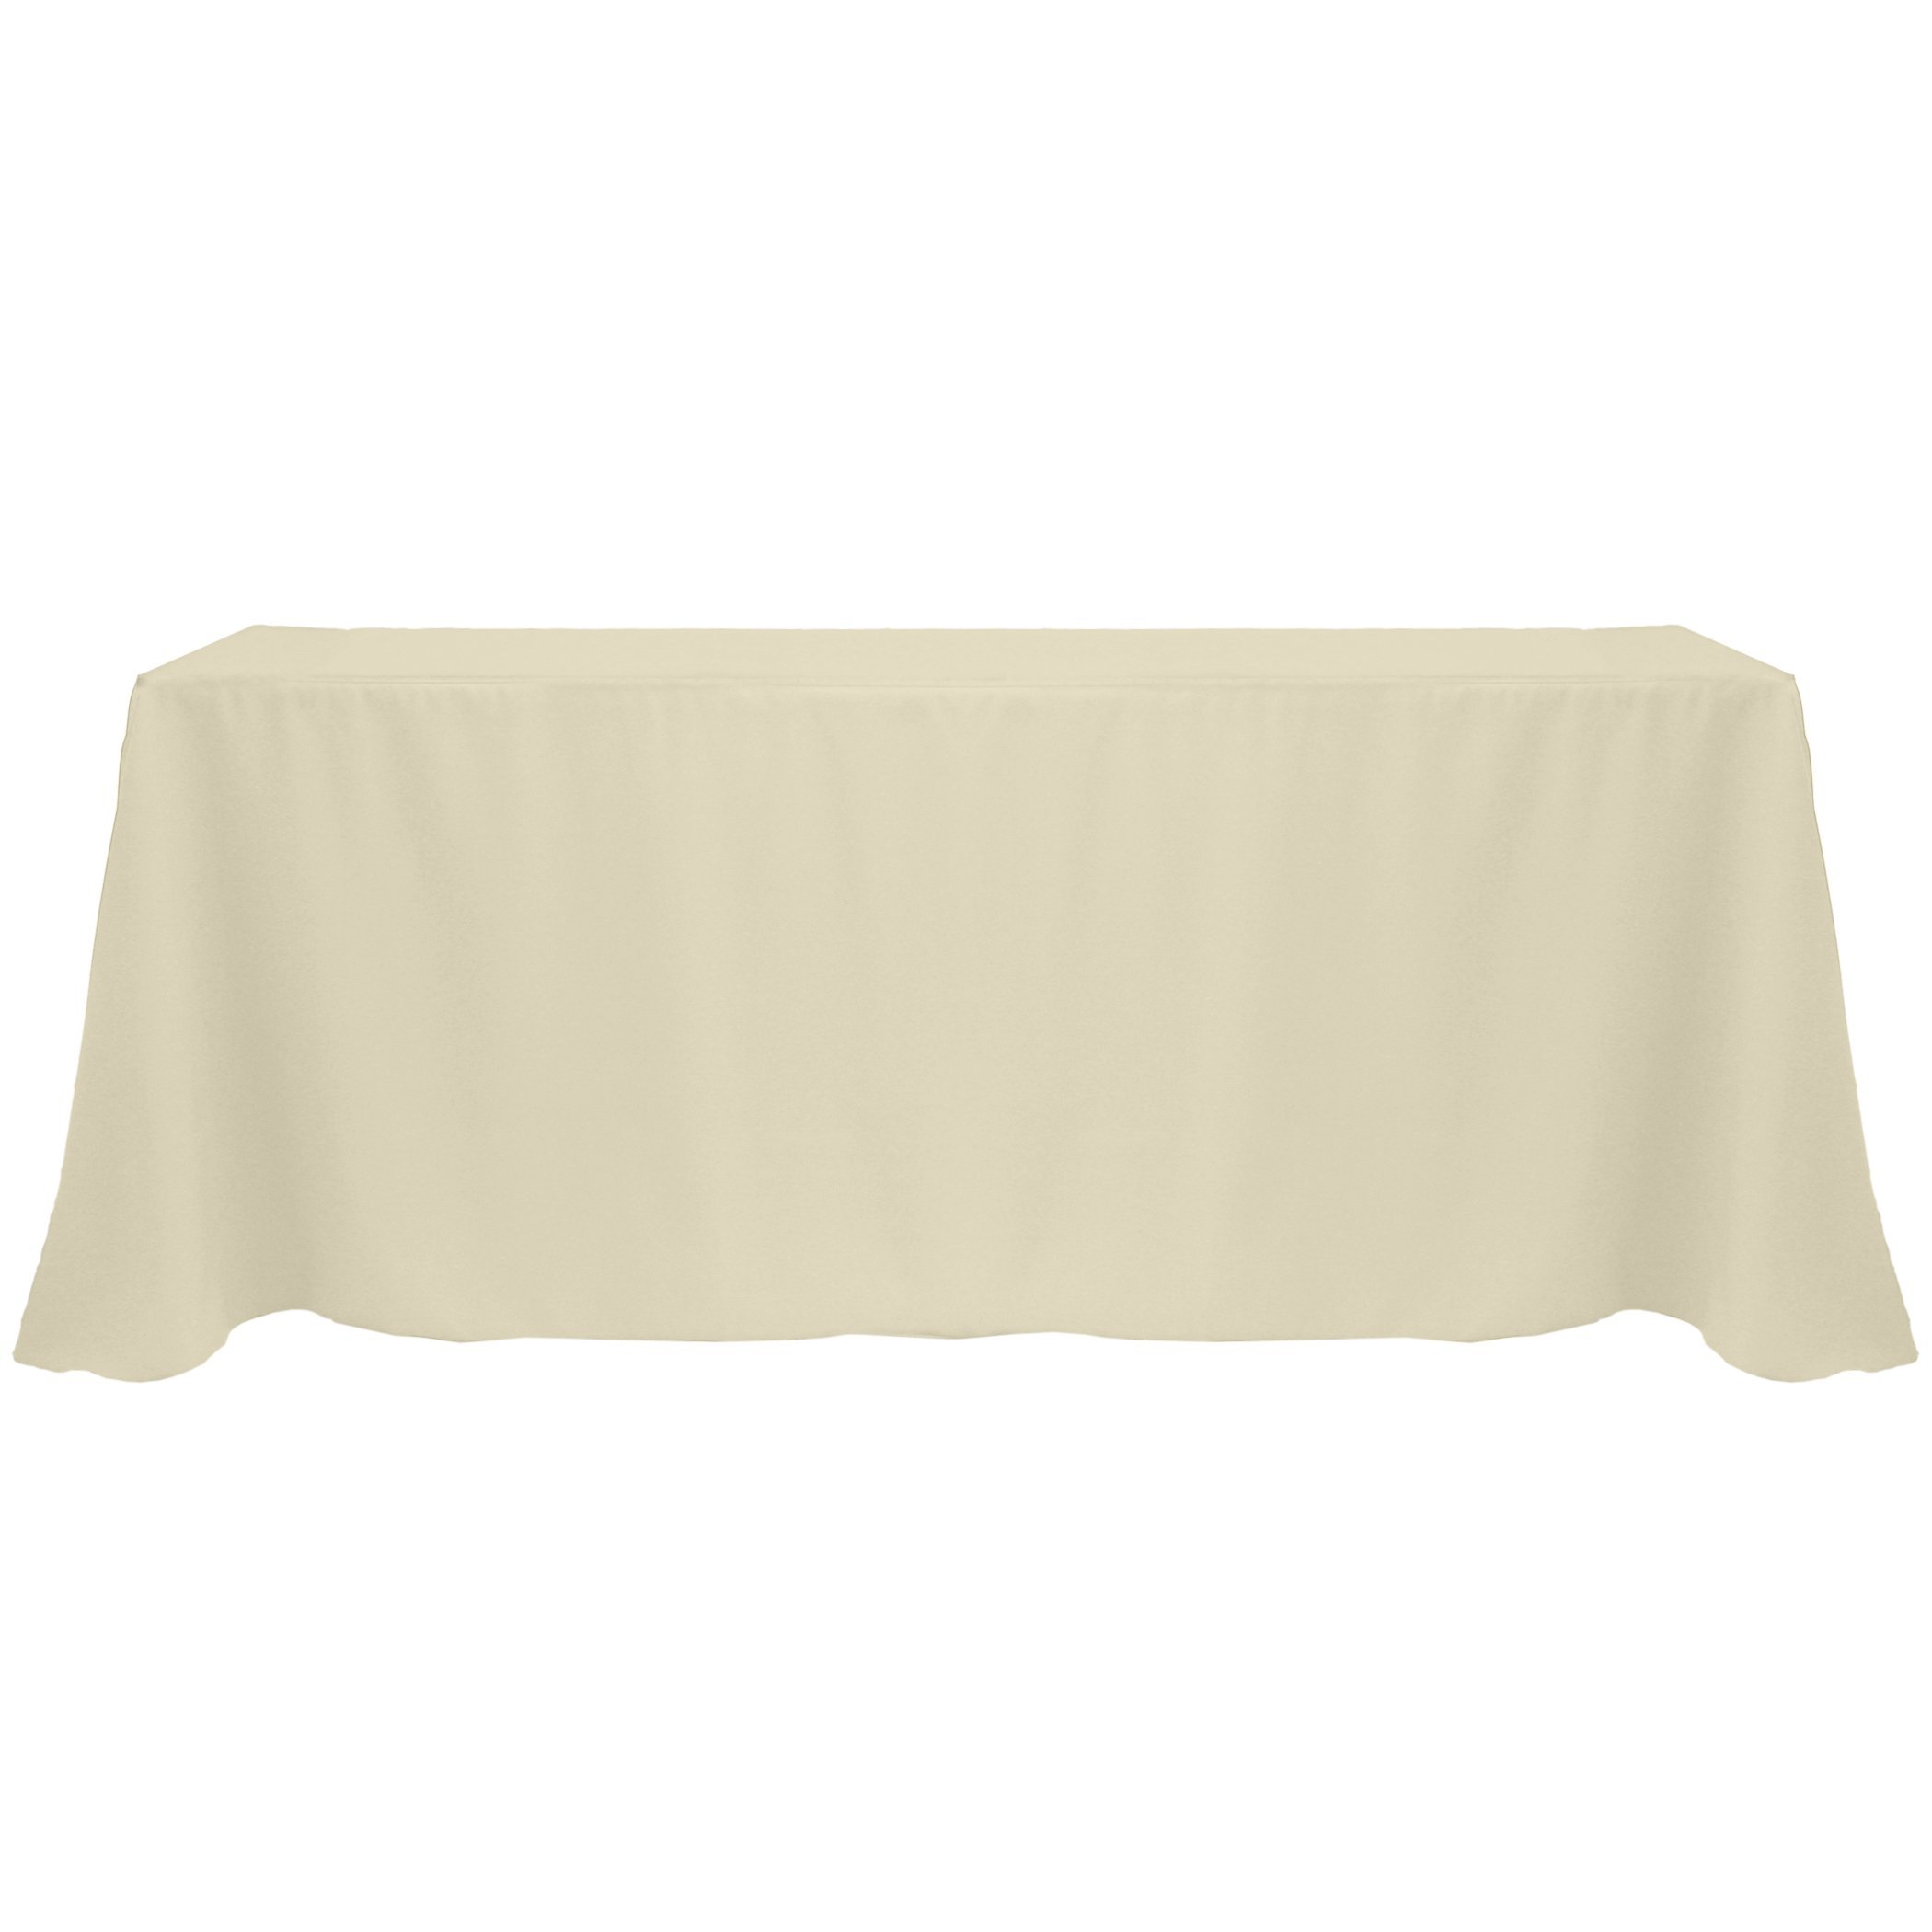 Ultimate Textile (12 Pack) 108 x 156-Inch Rectangular Polyester Linen Tablecloth with Rounded Corners - for Wedding, Restaurant or Banquet use, Tan Beige